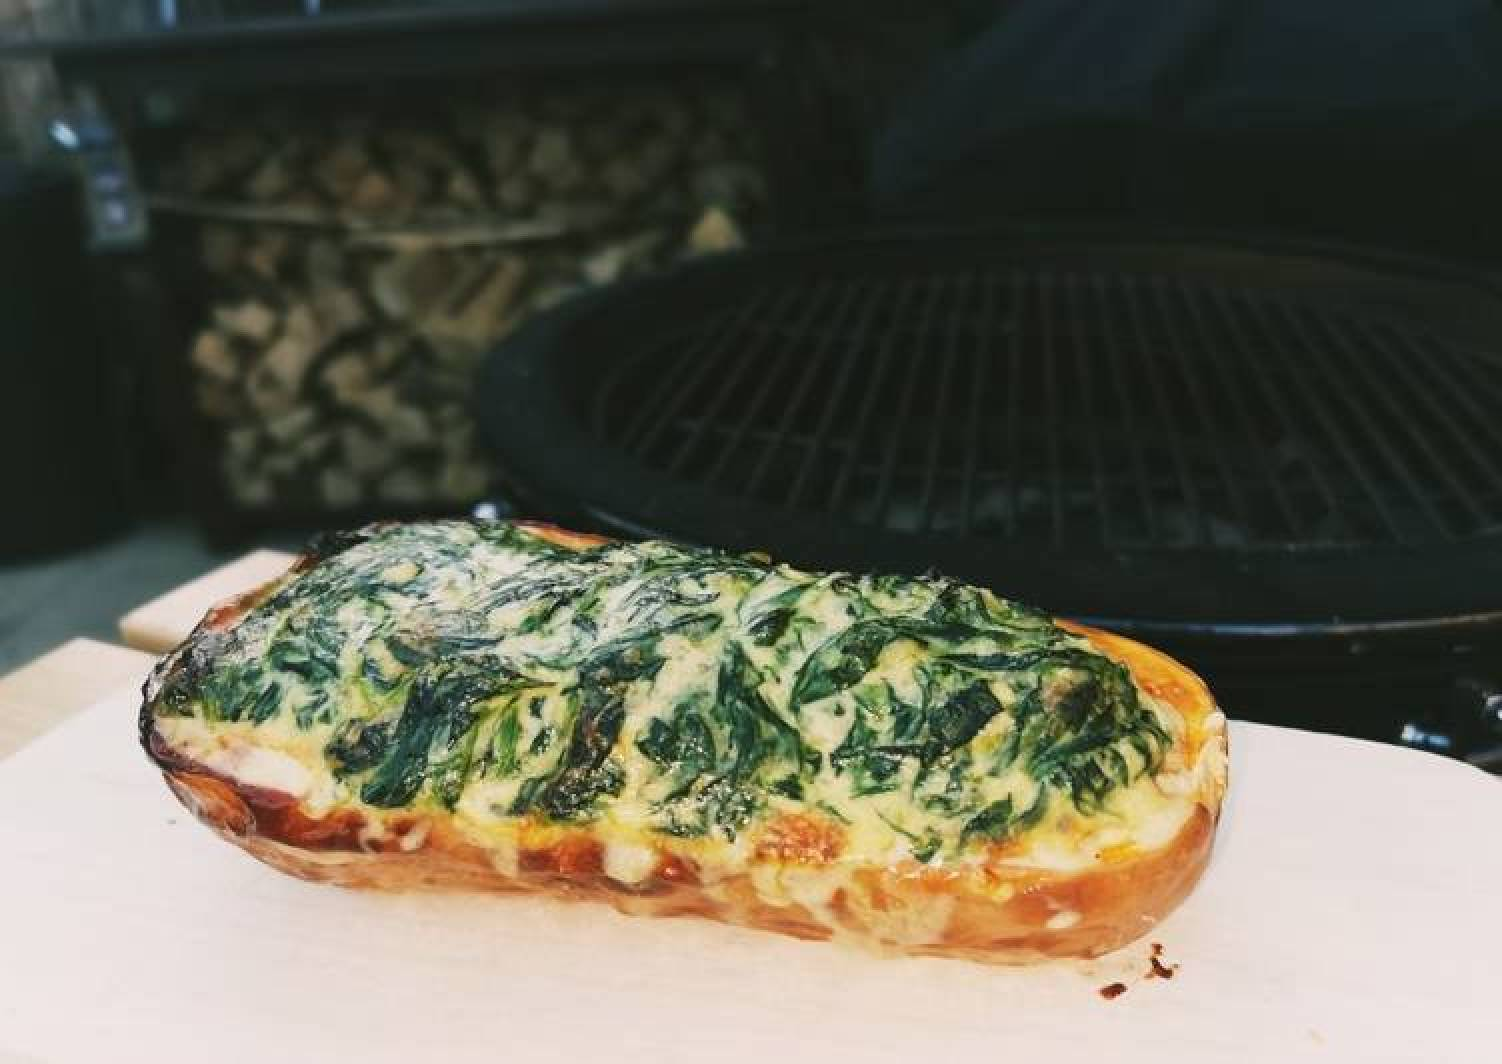 Baked BBQ Butternut with a cream spinach filling 👌